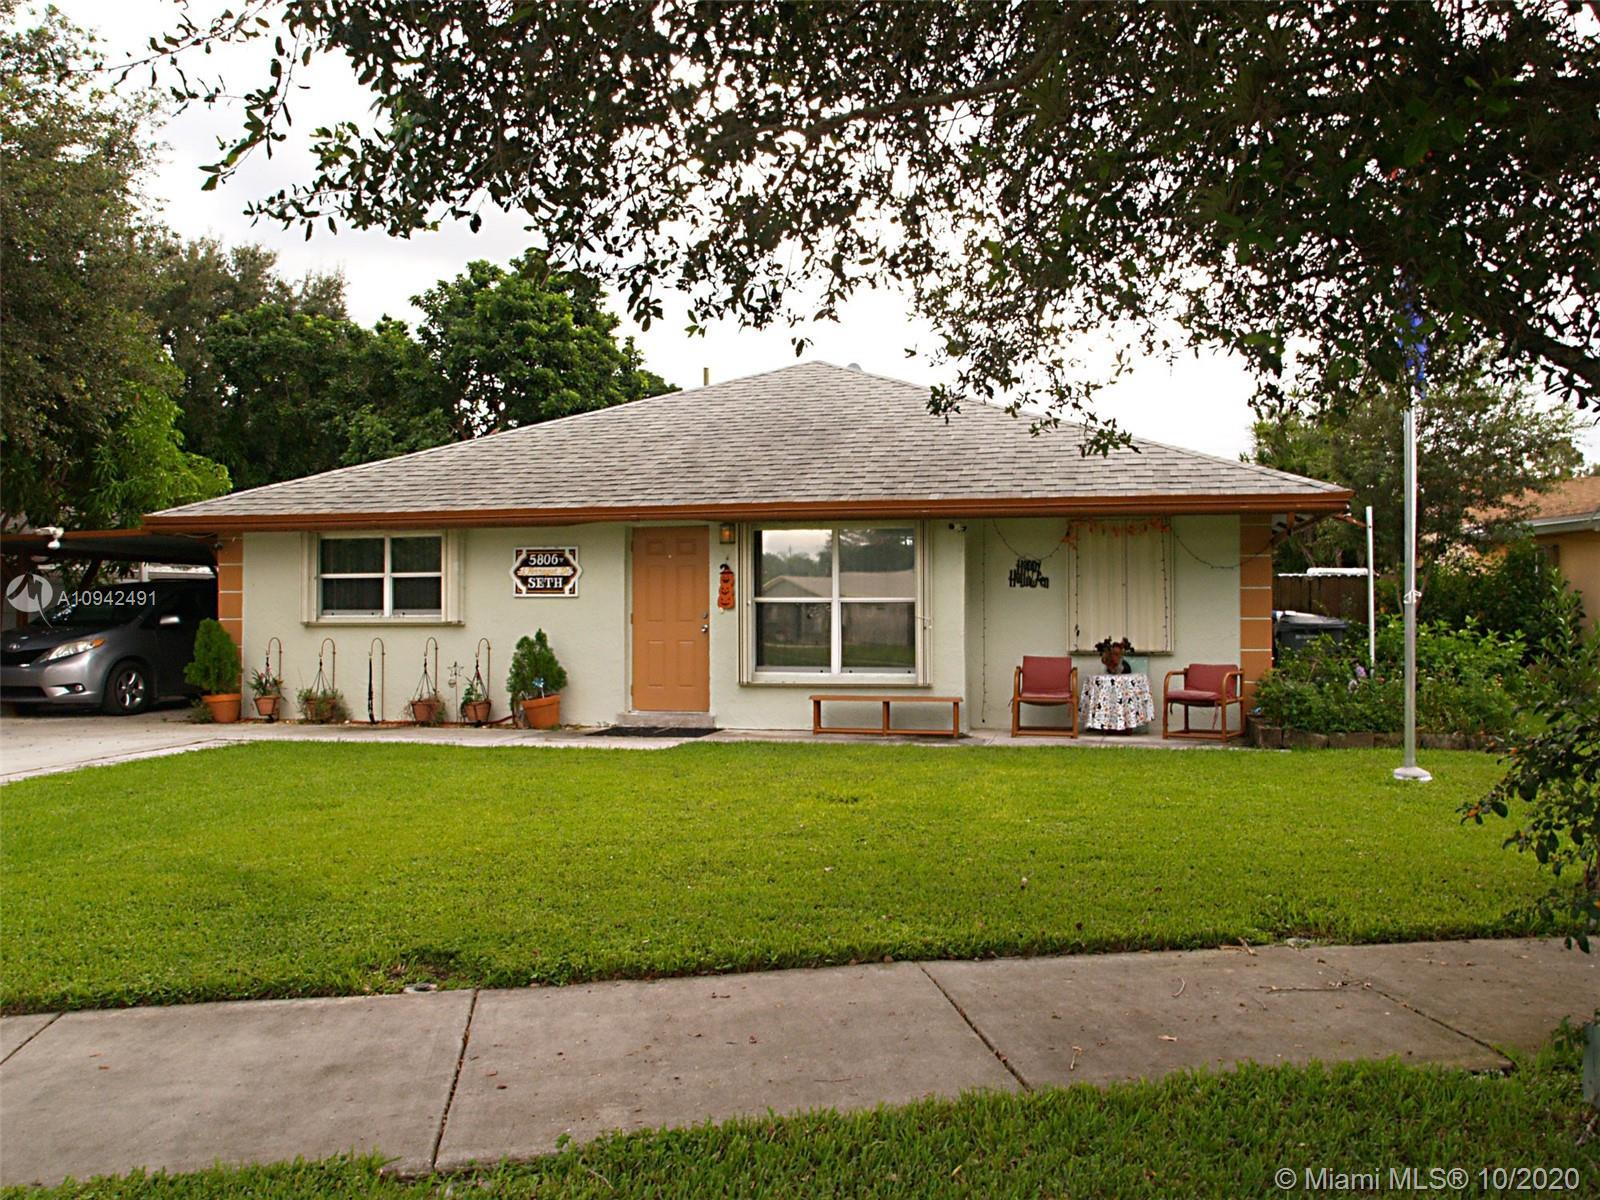 Motivated seller. A complete renovation in 2005, this home was transformed to nearly 2000 square fee